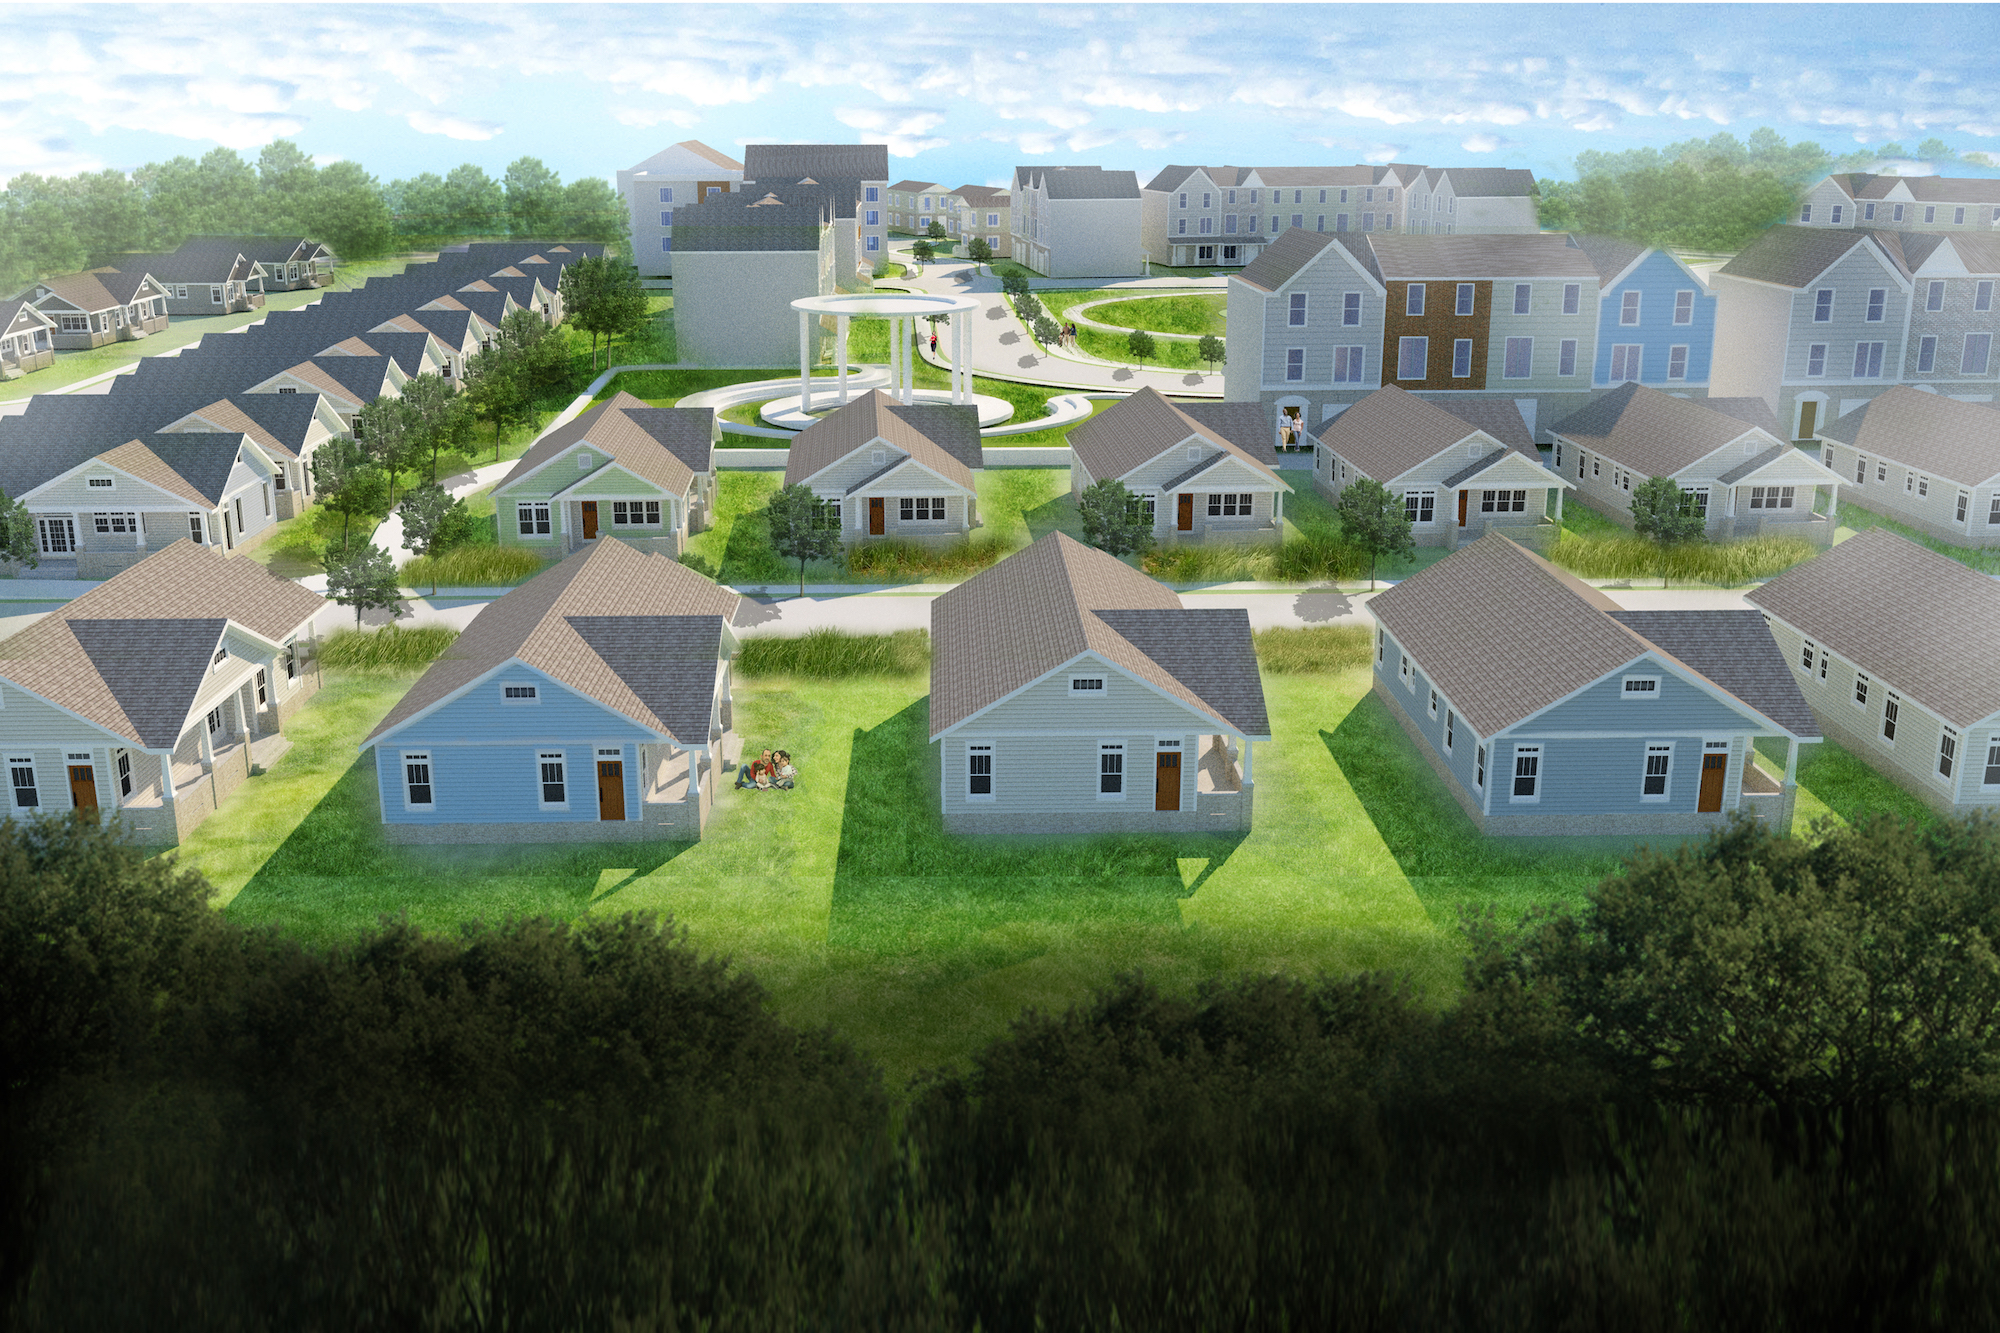 31-acre 'village' of affordable housing announced south of downtown